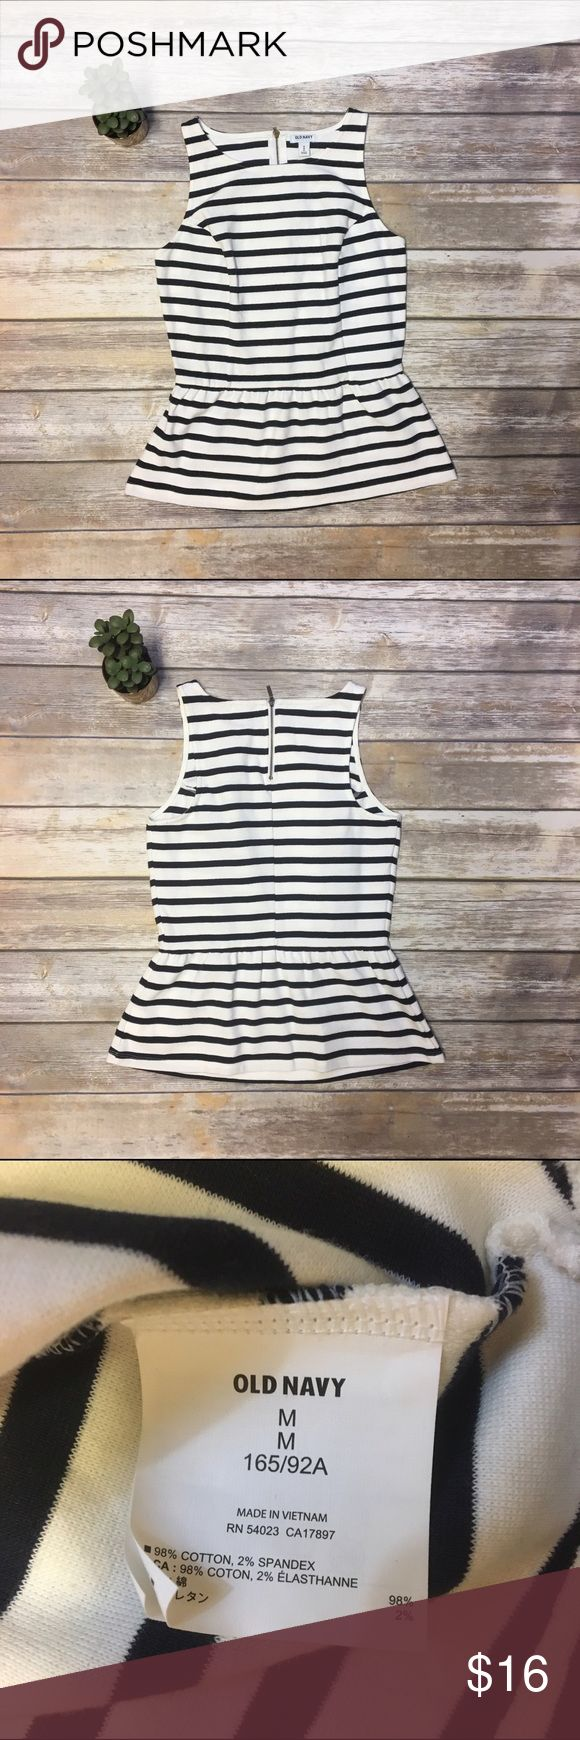 Old Navy Black and White Peplum Tank Adorable Peplum top in Black and White stripes. Exposed Zipper up the back and made of thick, stretchy material Old Navy Tops Tank Tops